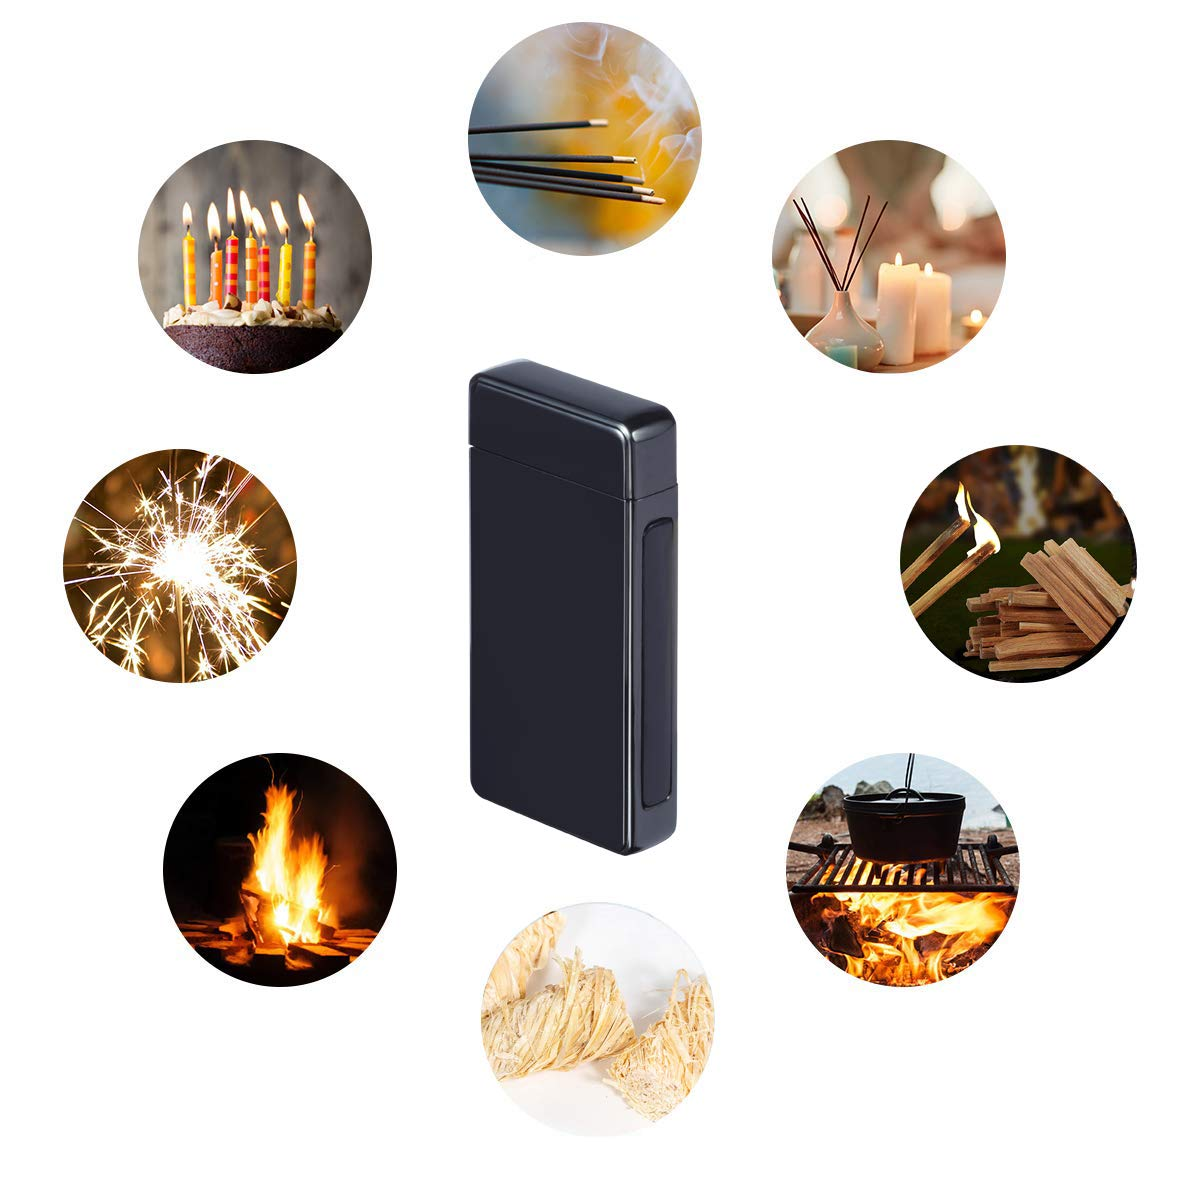 Lighter, Electric Plasma Arc Lighter Windproof USB Rechargeable Coil Lighter Magic Smart Cool Lighter for Candles,Camping, Fire Starter, Hunting, Backpacking,Hiking,EDCgear